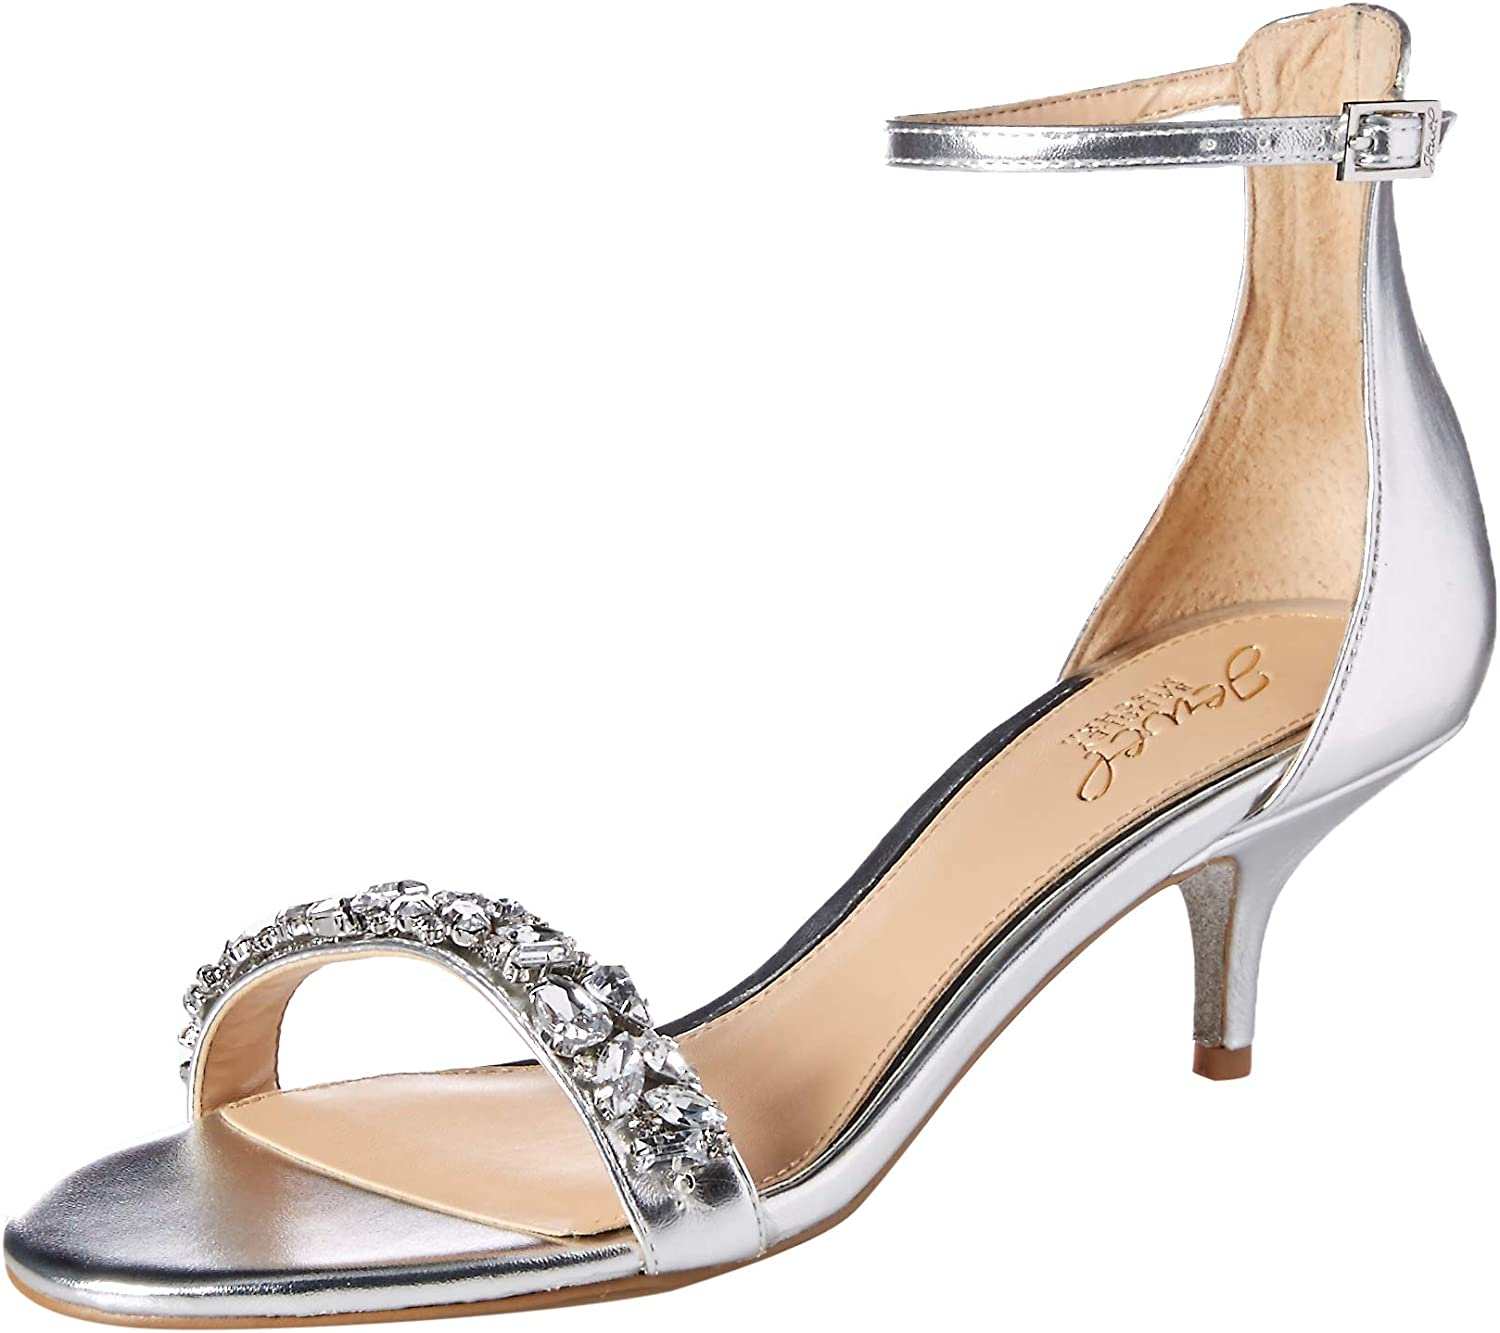 Badgley Mischka Womens Dash Heeled Sandal